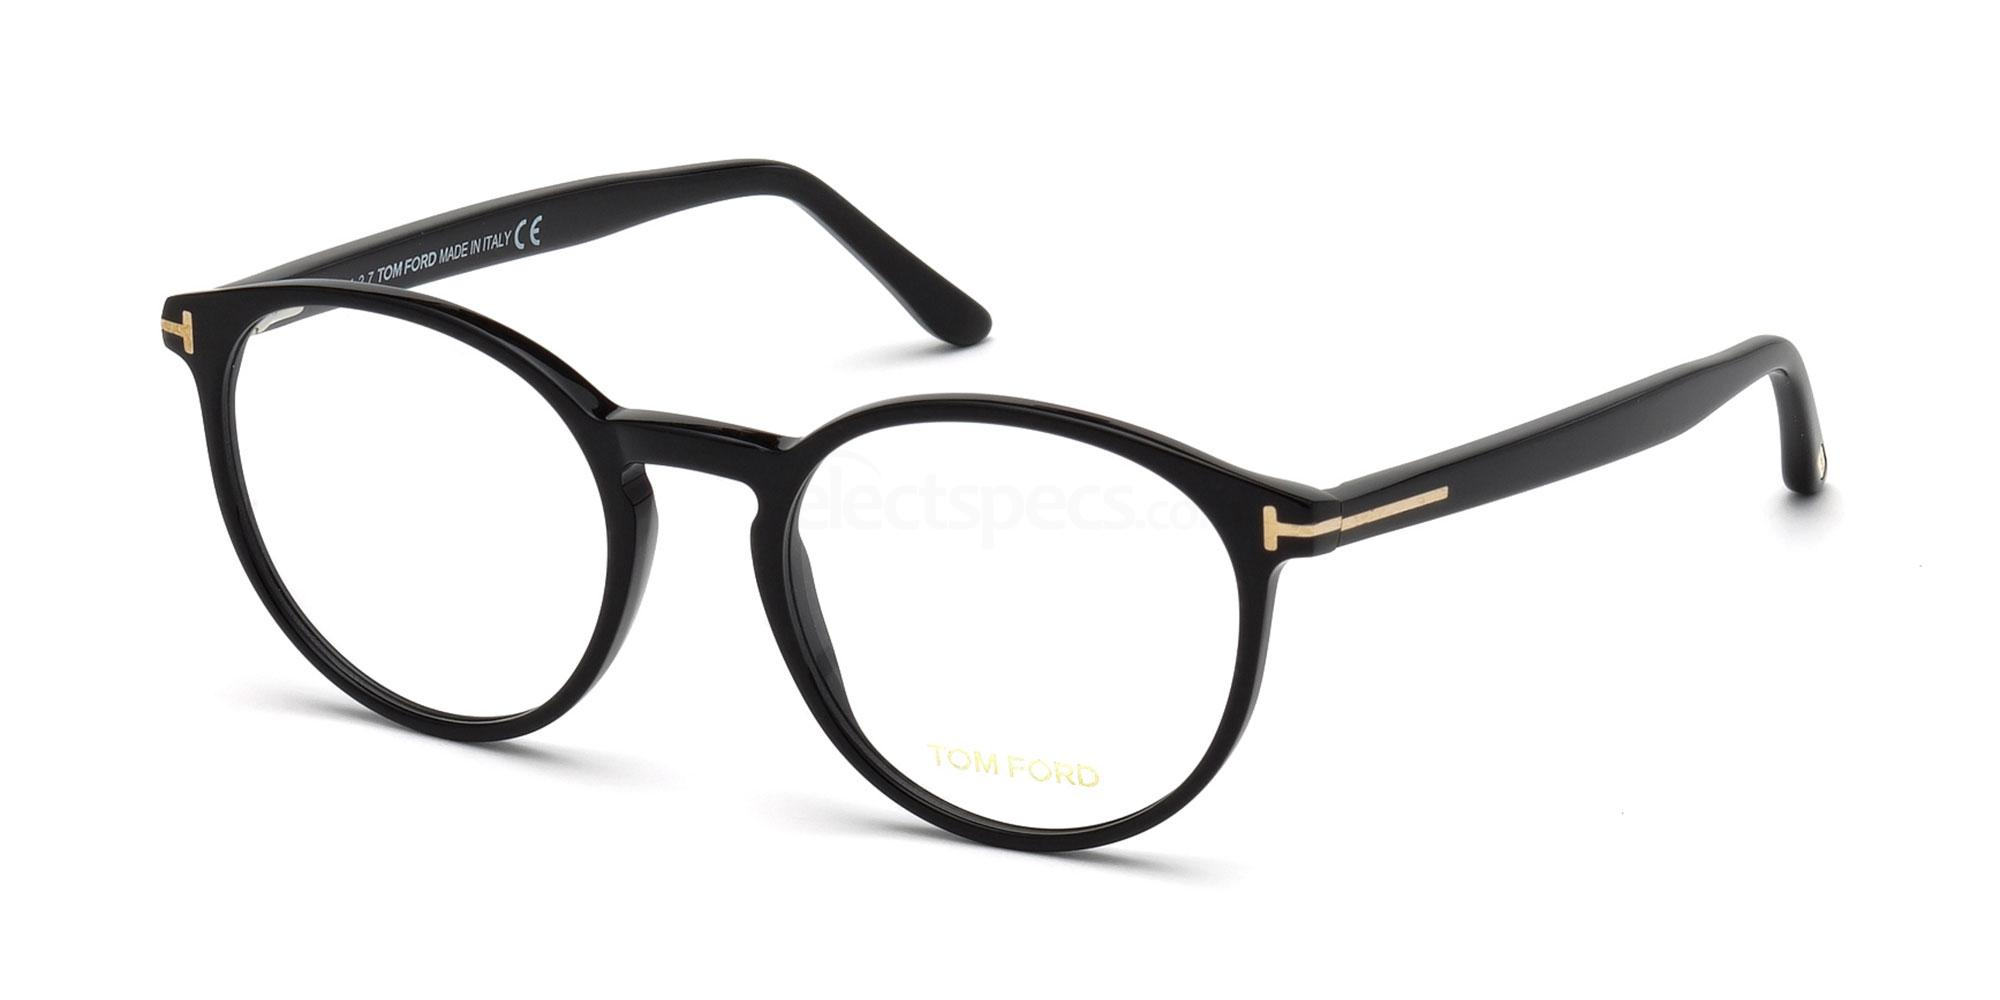 001 FT5524 Glasses, Tom Ford